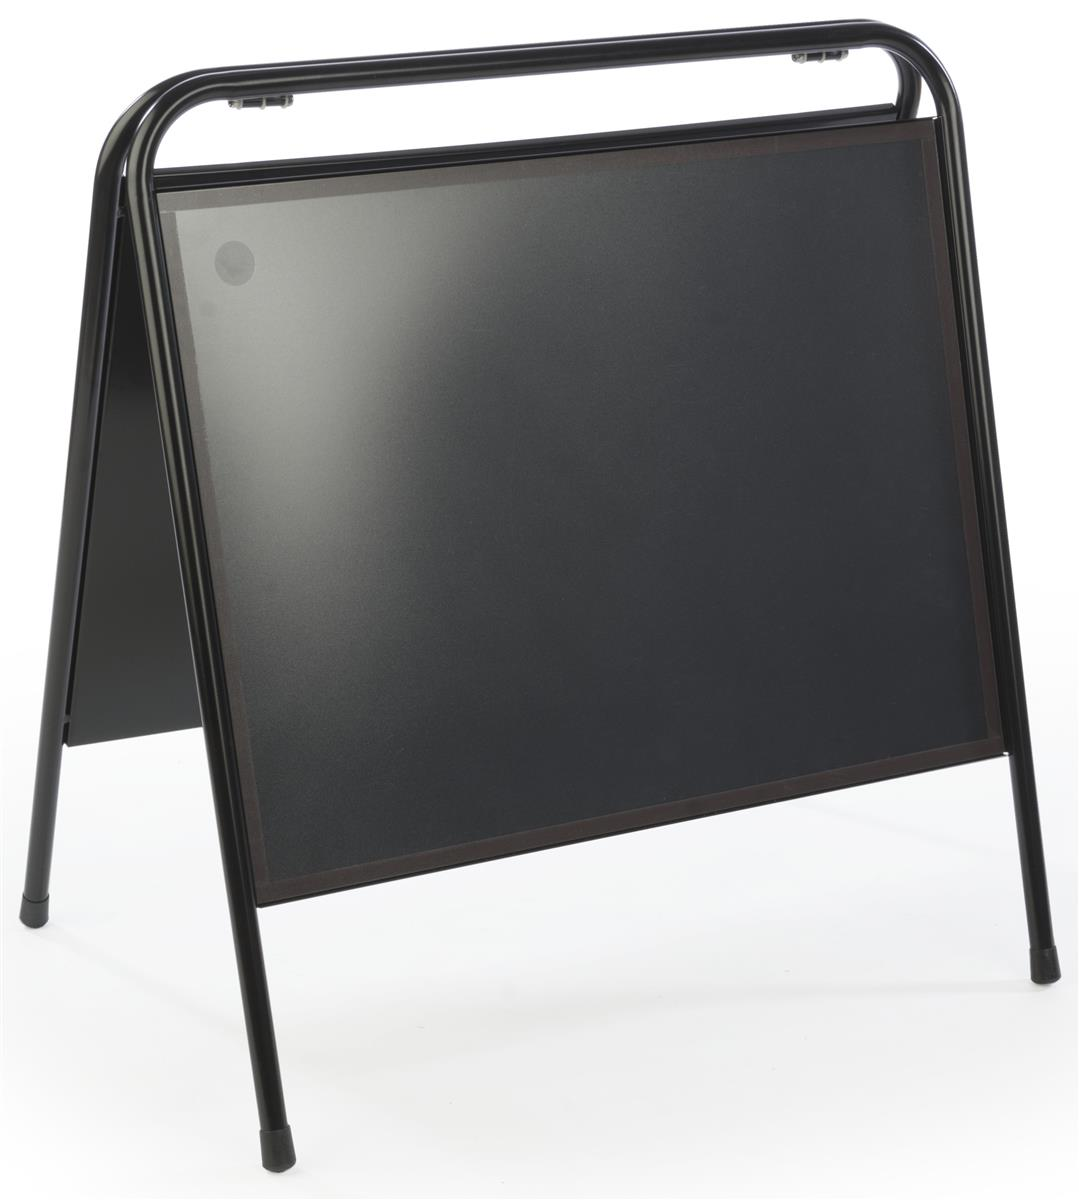 "Sidewalk Sandwich Board Sign Holder, 24"" x 18"", Portable, Magnetic Lens (Black Steel) (MNSGN2418)"